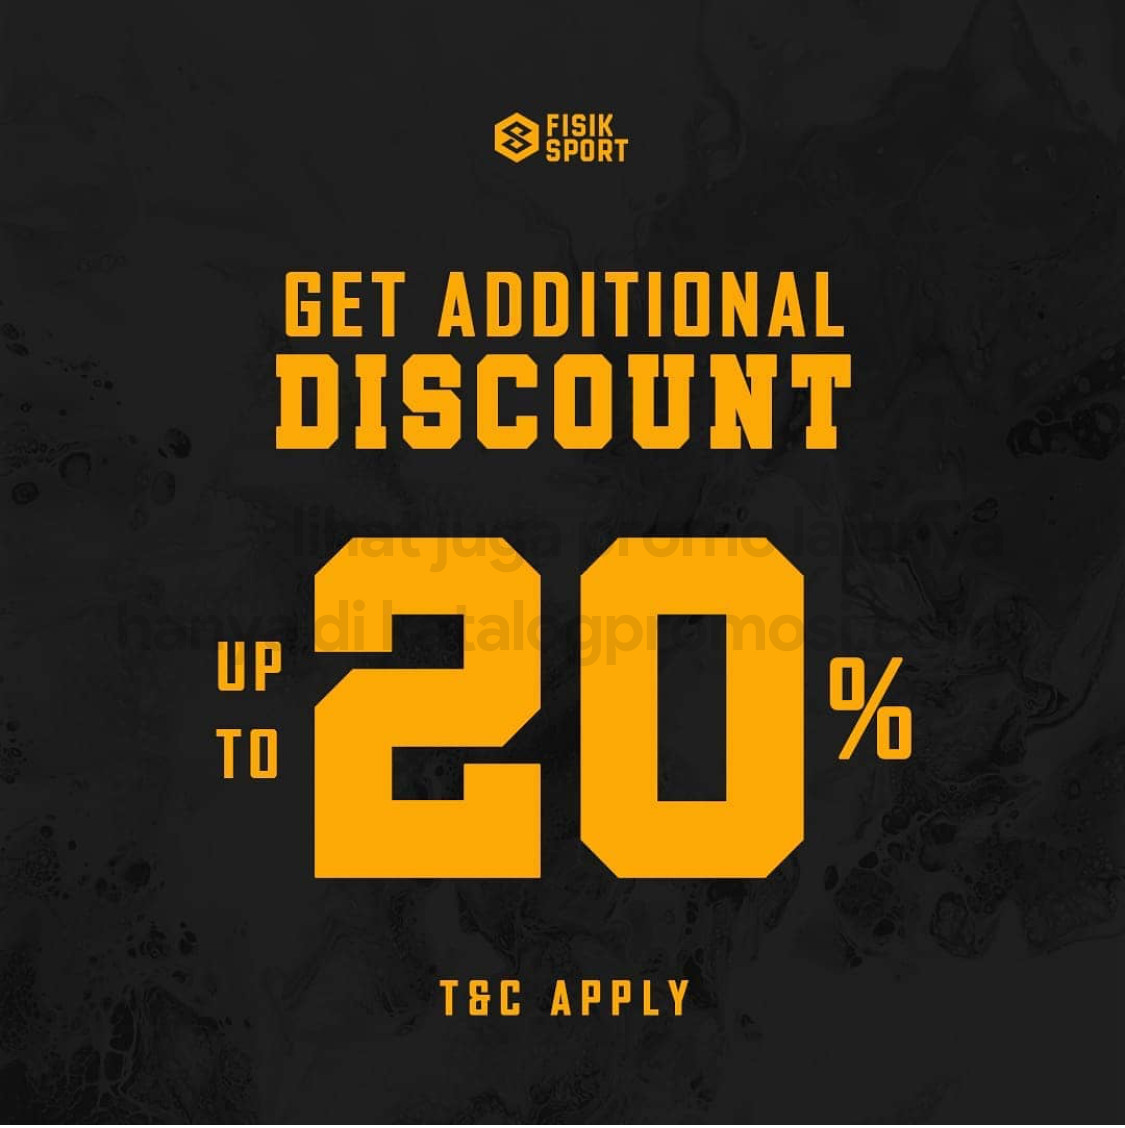 Promo FISIK SPORT ADDITIONAL DISCOUNT up to 20% off